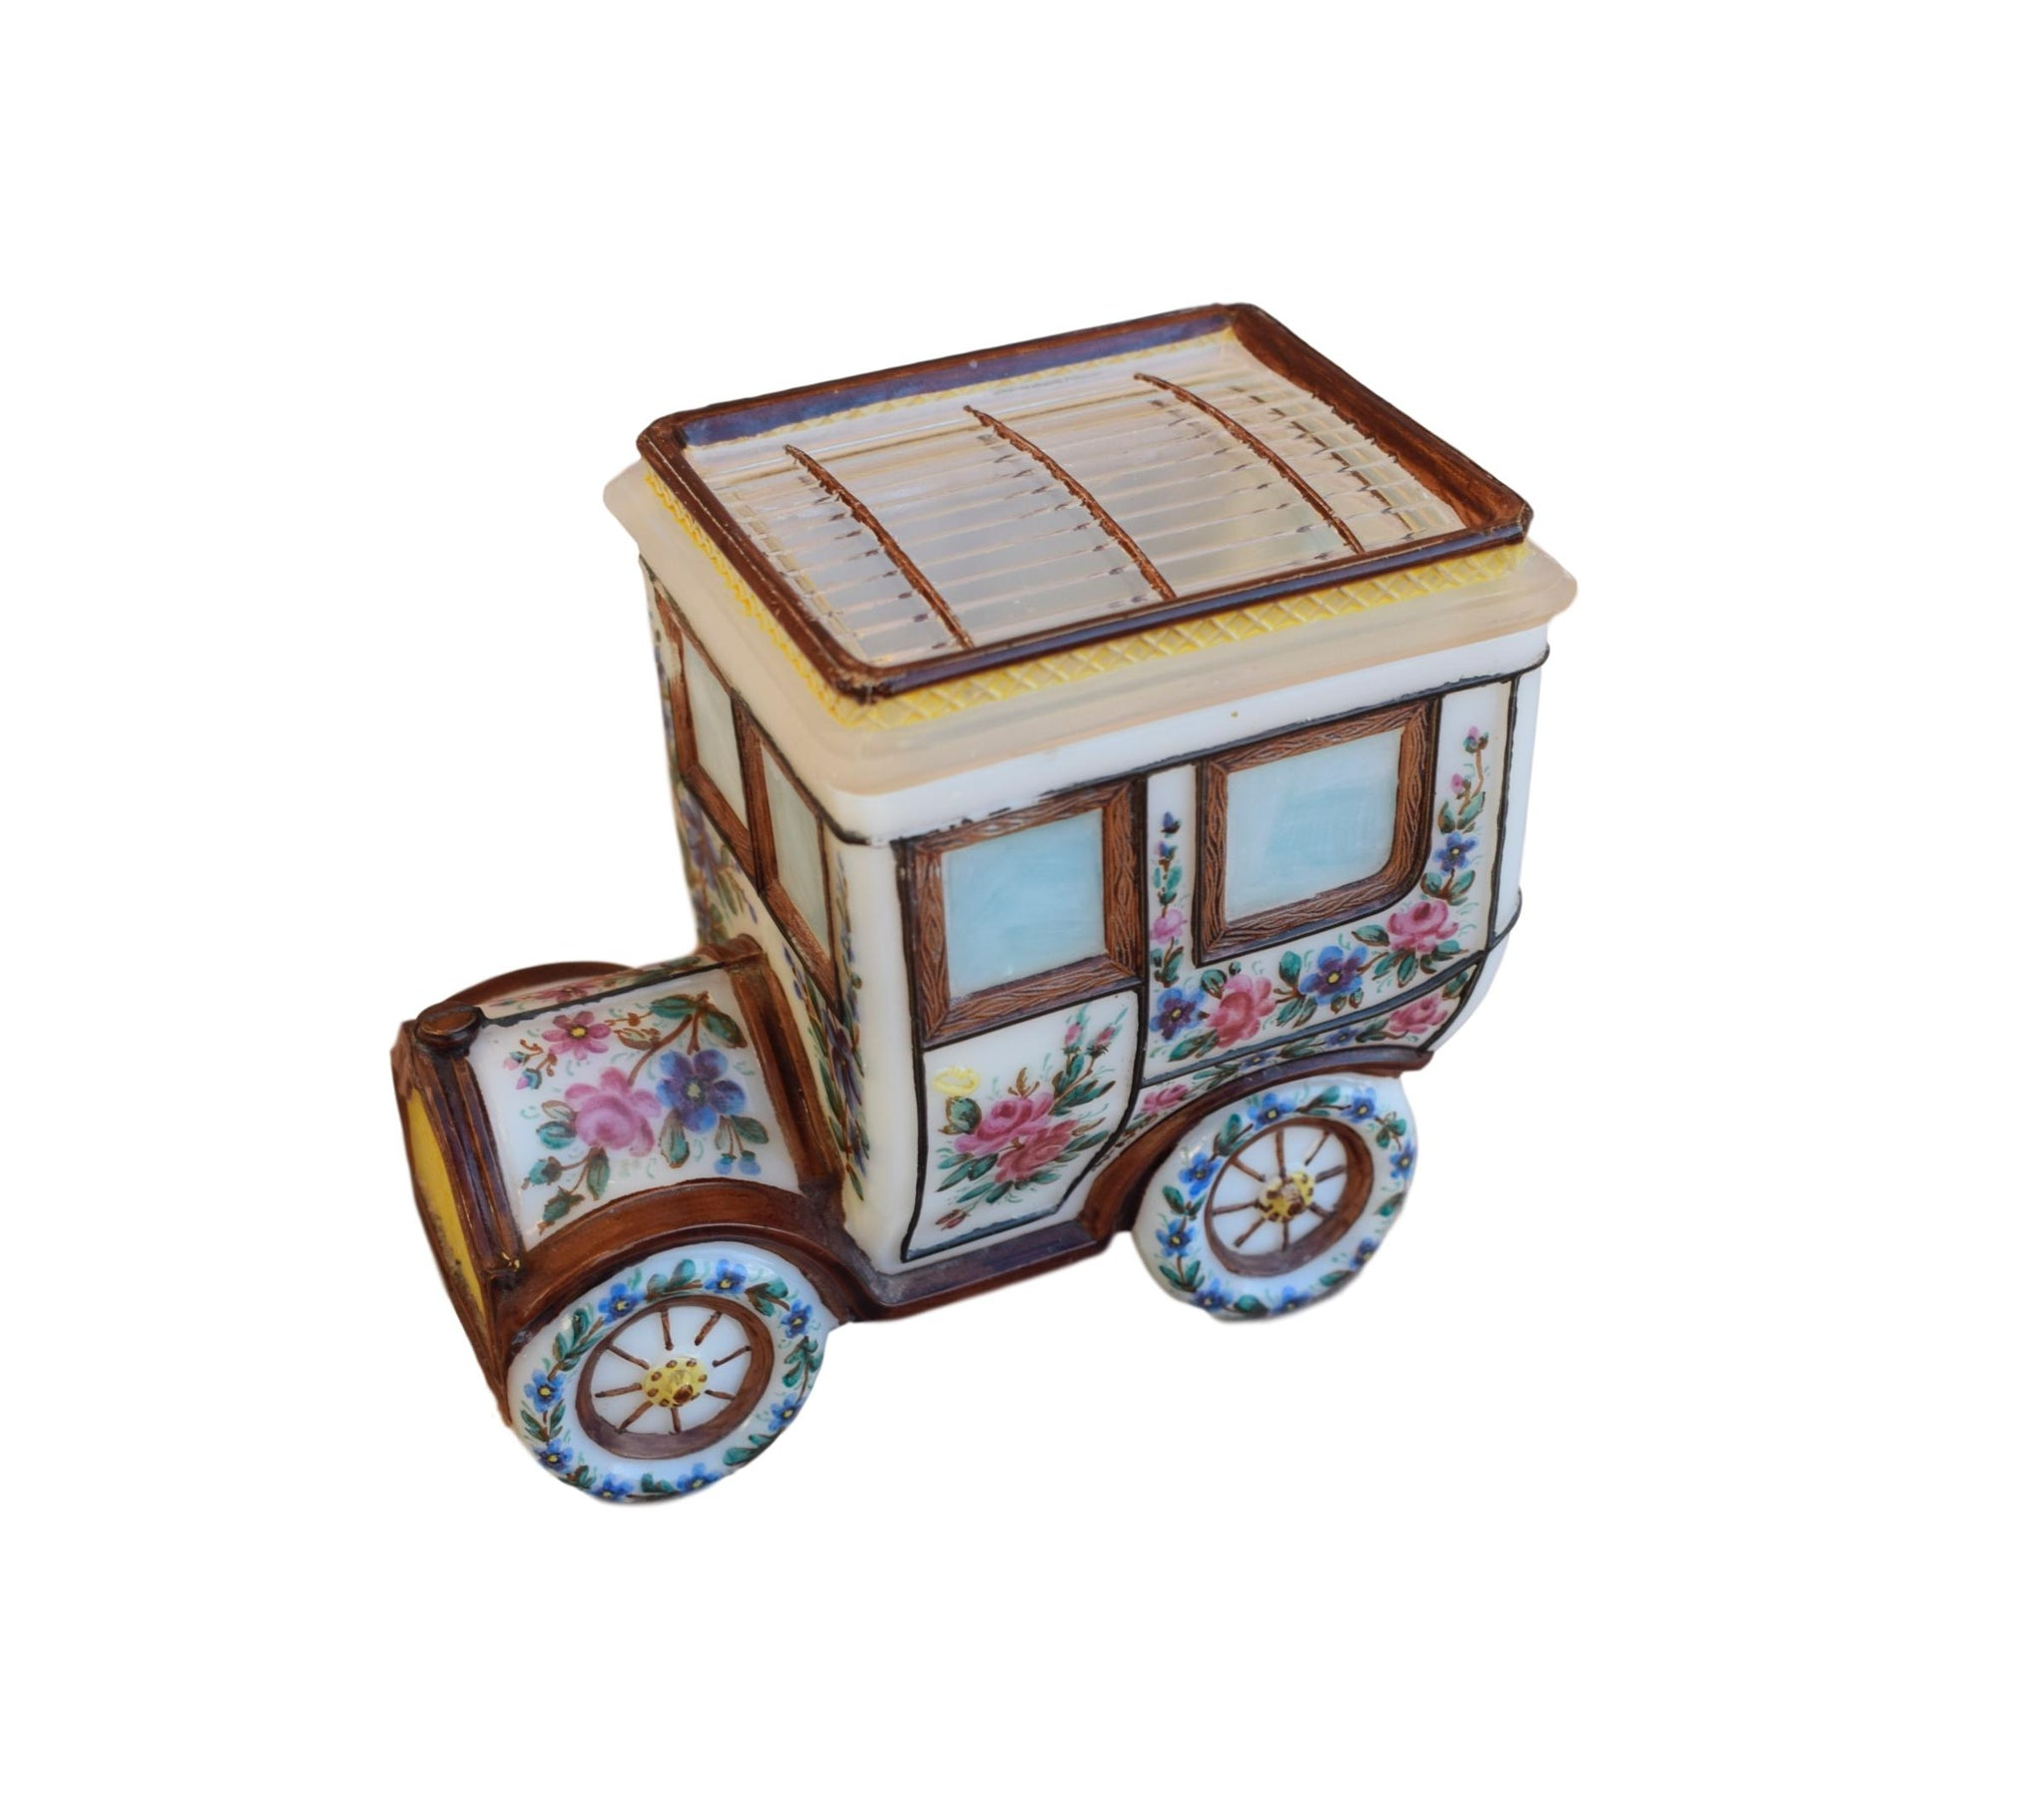 French Portieux Opaline Car Box - Hand Painted Flowers Milk Glass Candy Jar - Antique Biscuits Lidded Box - Automobile Box